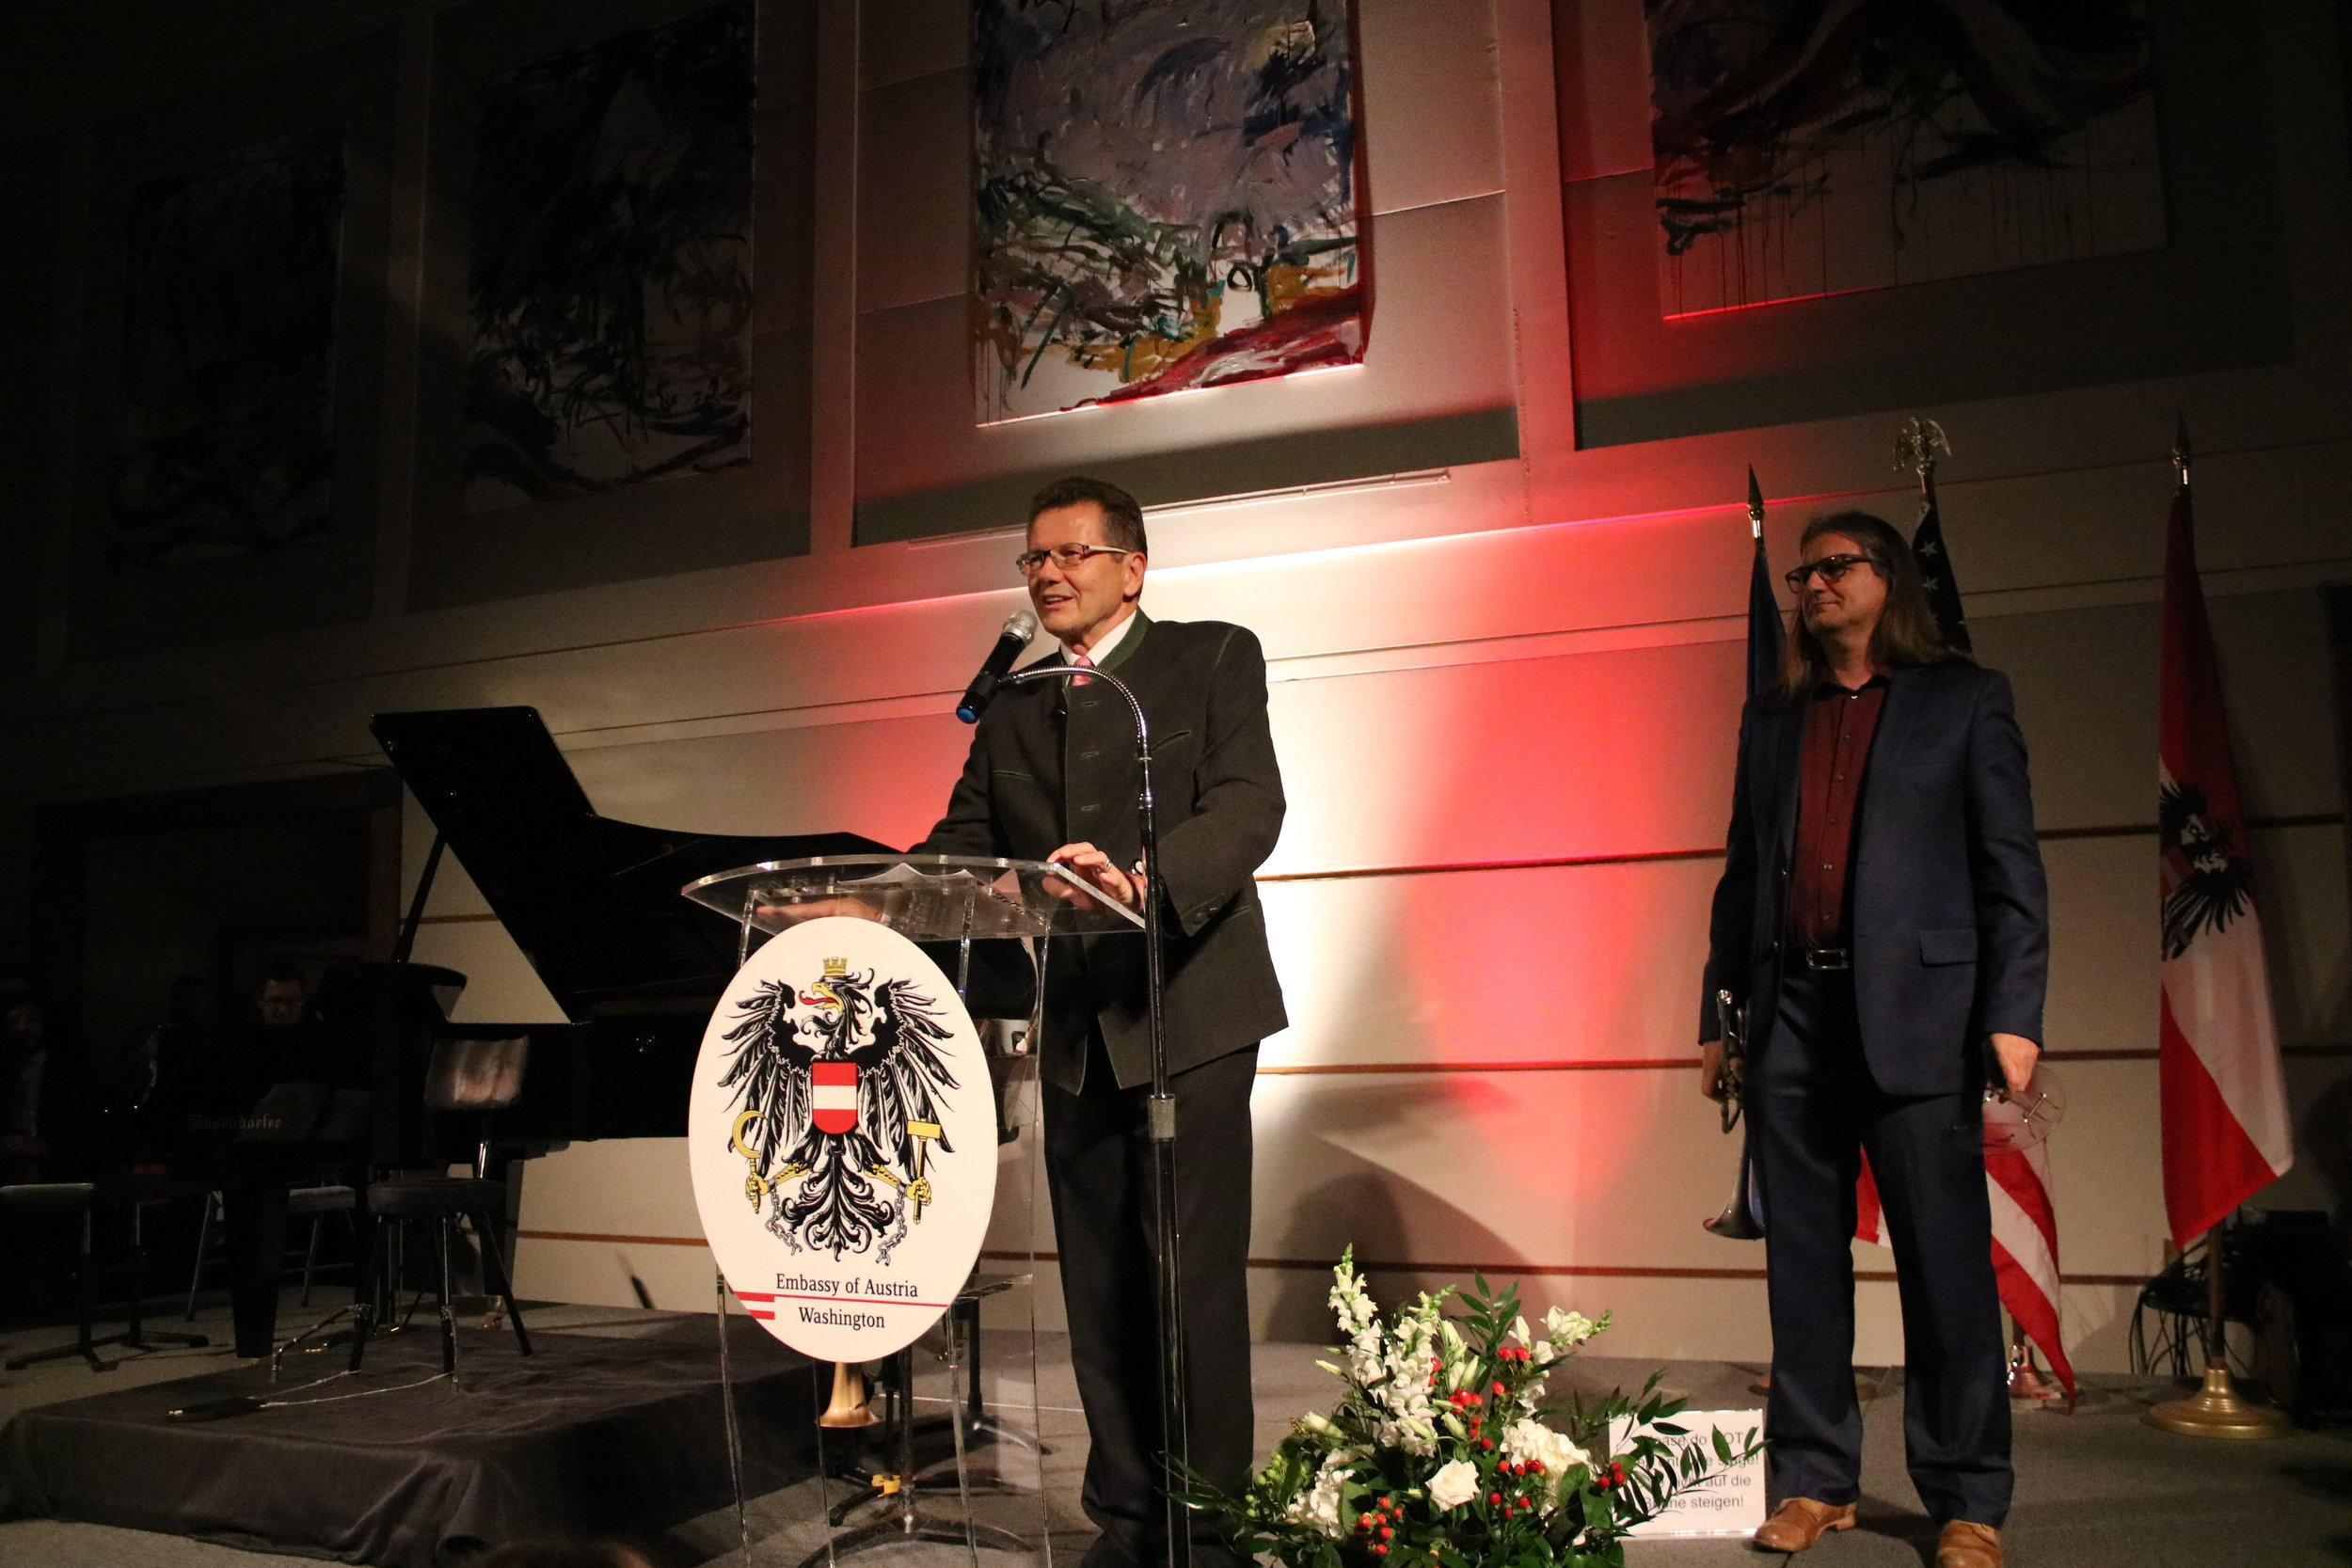 Ambassador Wolfgang Waldner welcomes the guests at the Austrian National Day Reception on October 25, 2017